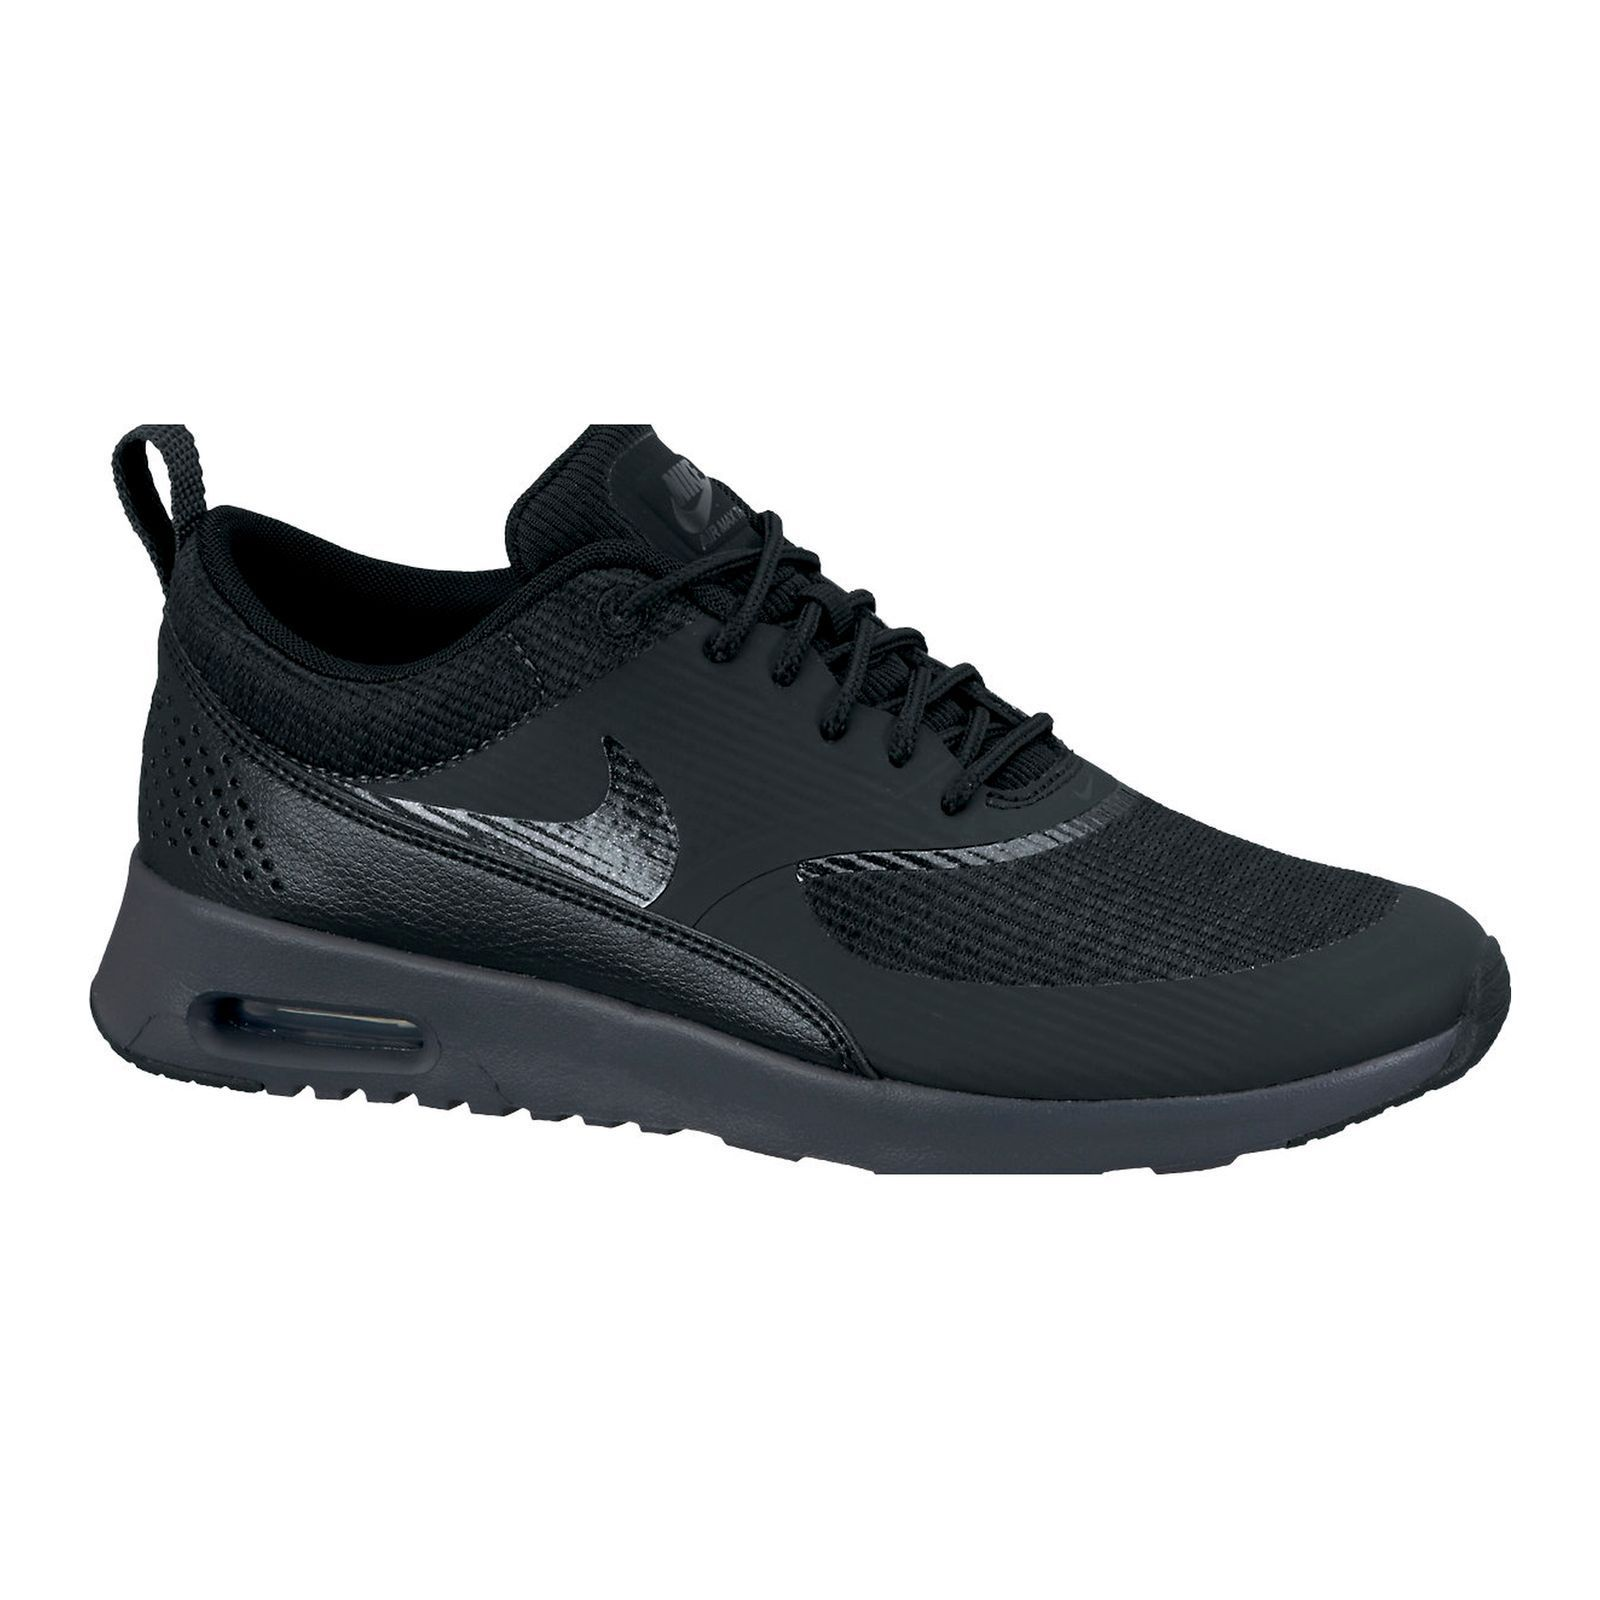 huge selection of c9842 8784a air max théa premium - Baskets - noir - Nike - Ref  1411091   Brandalley